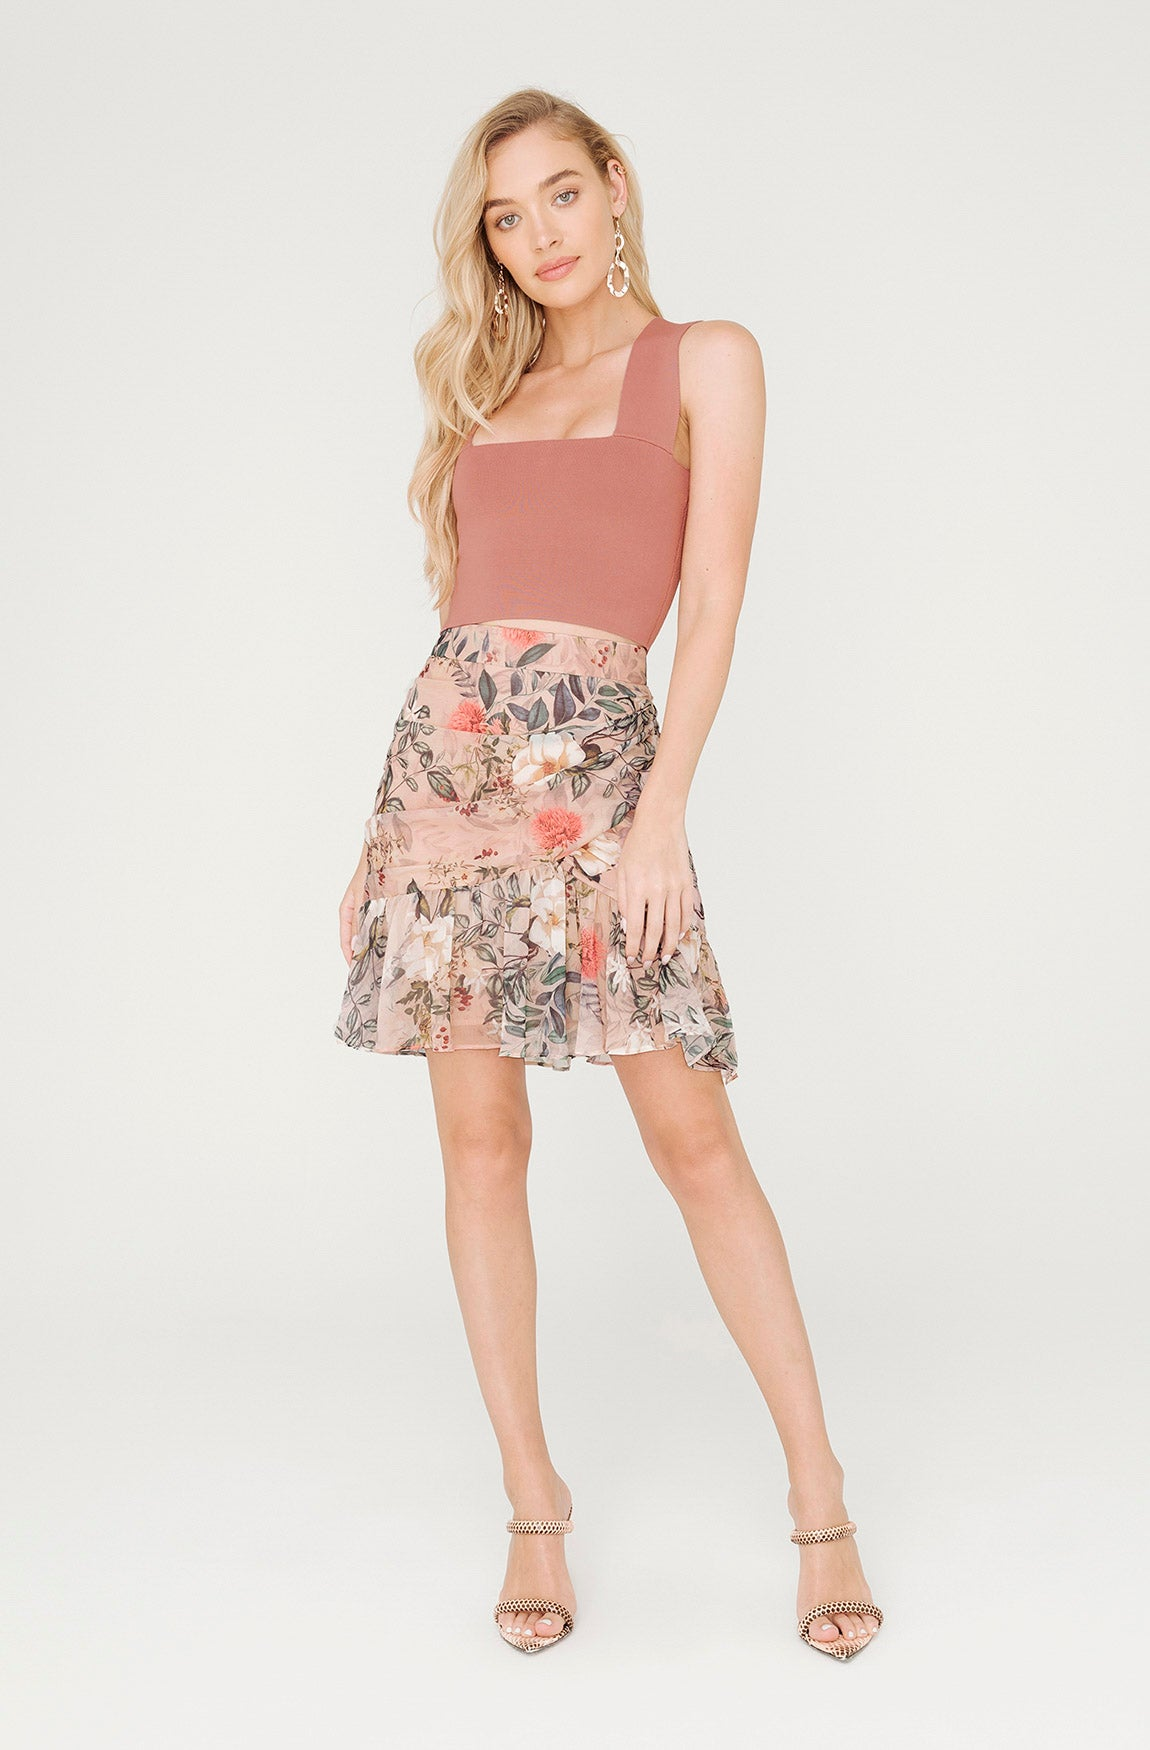 GARDEN OF EDEN FLORAL MINI SKIRT